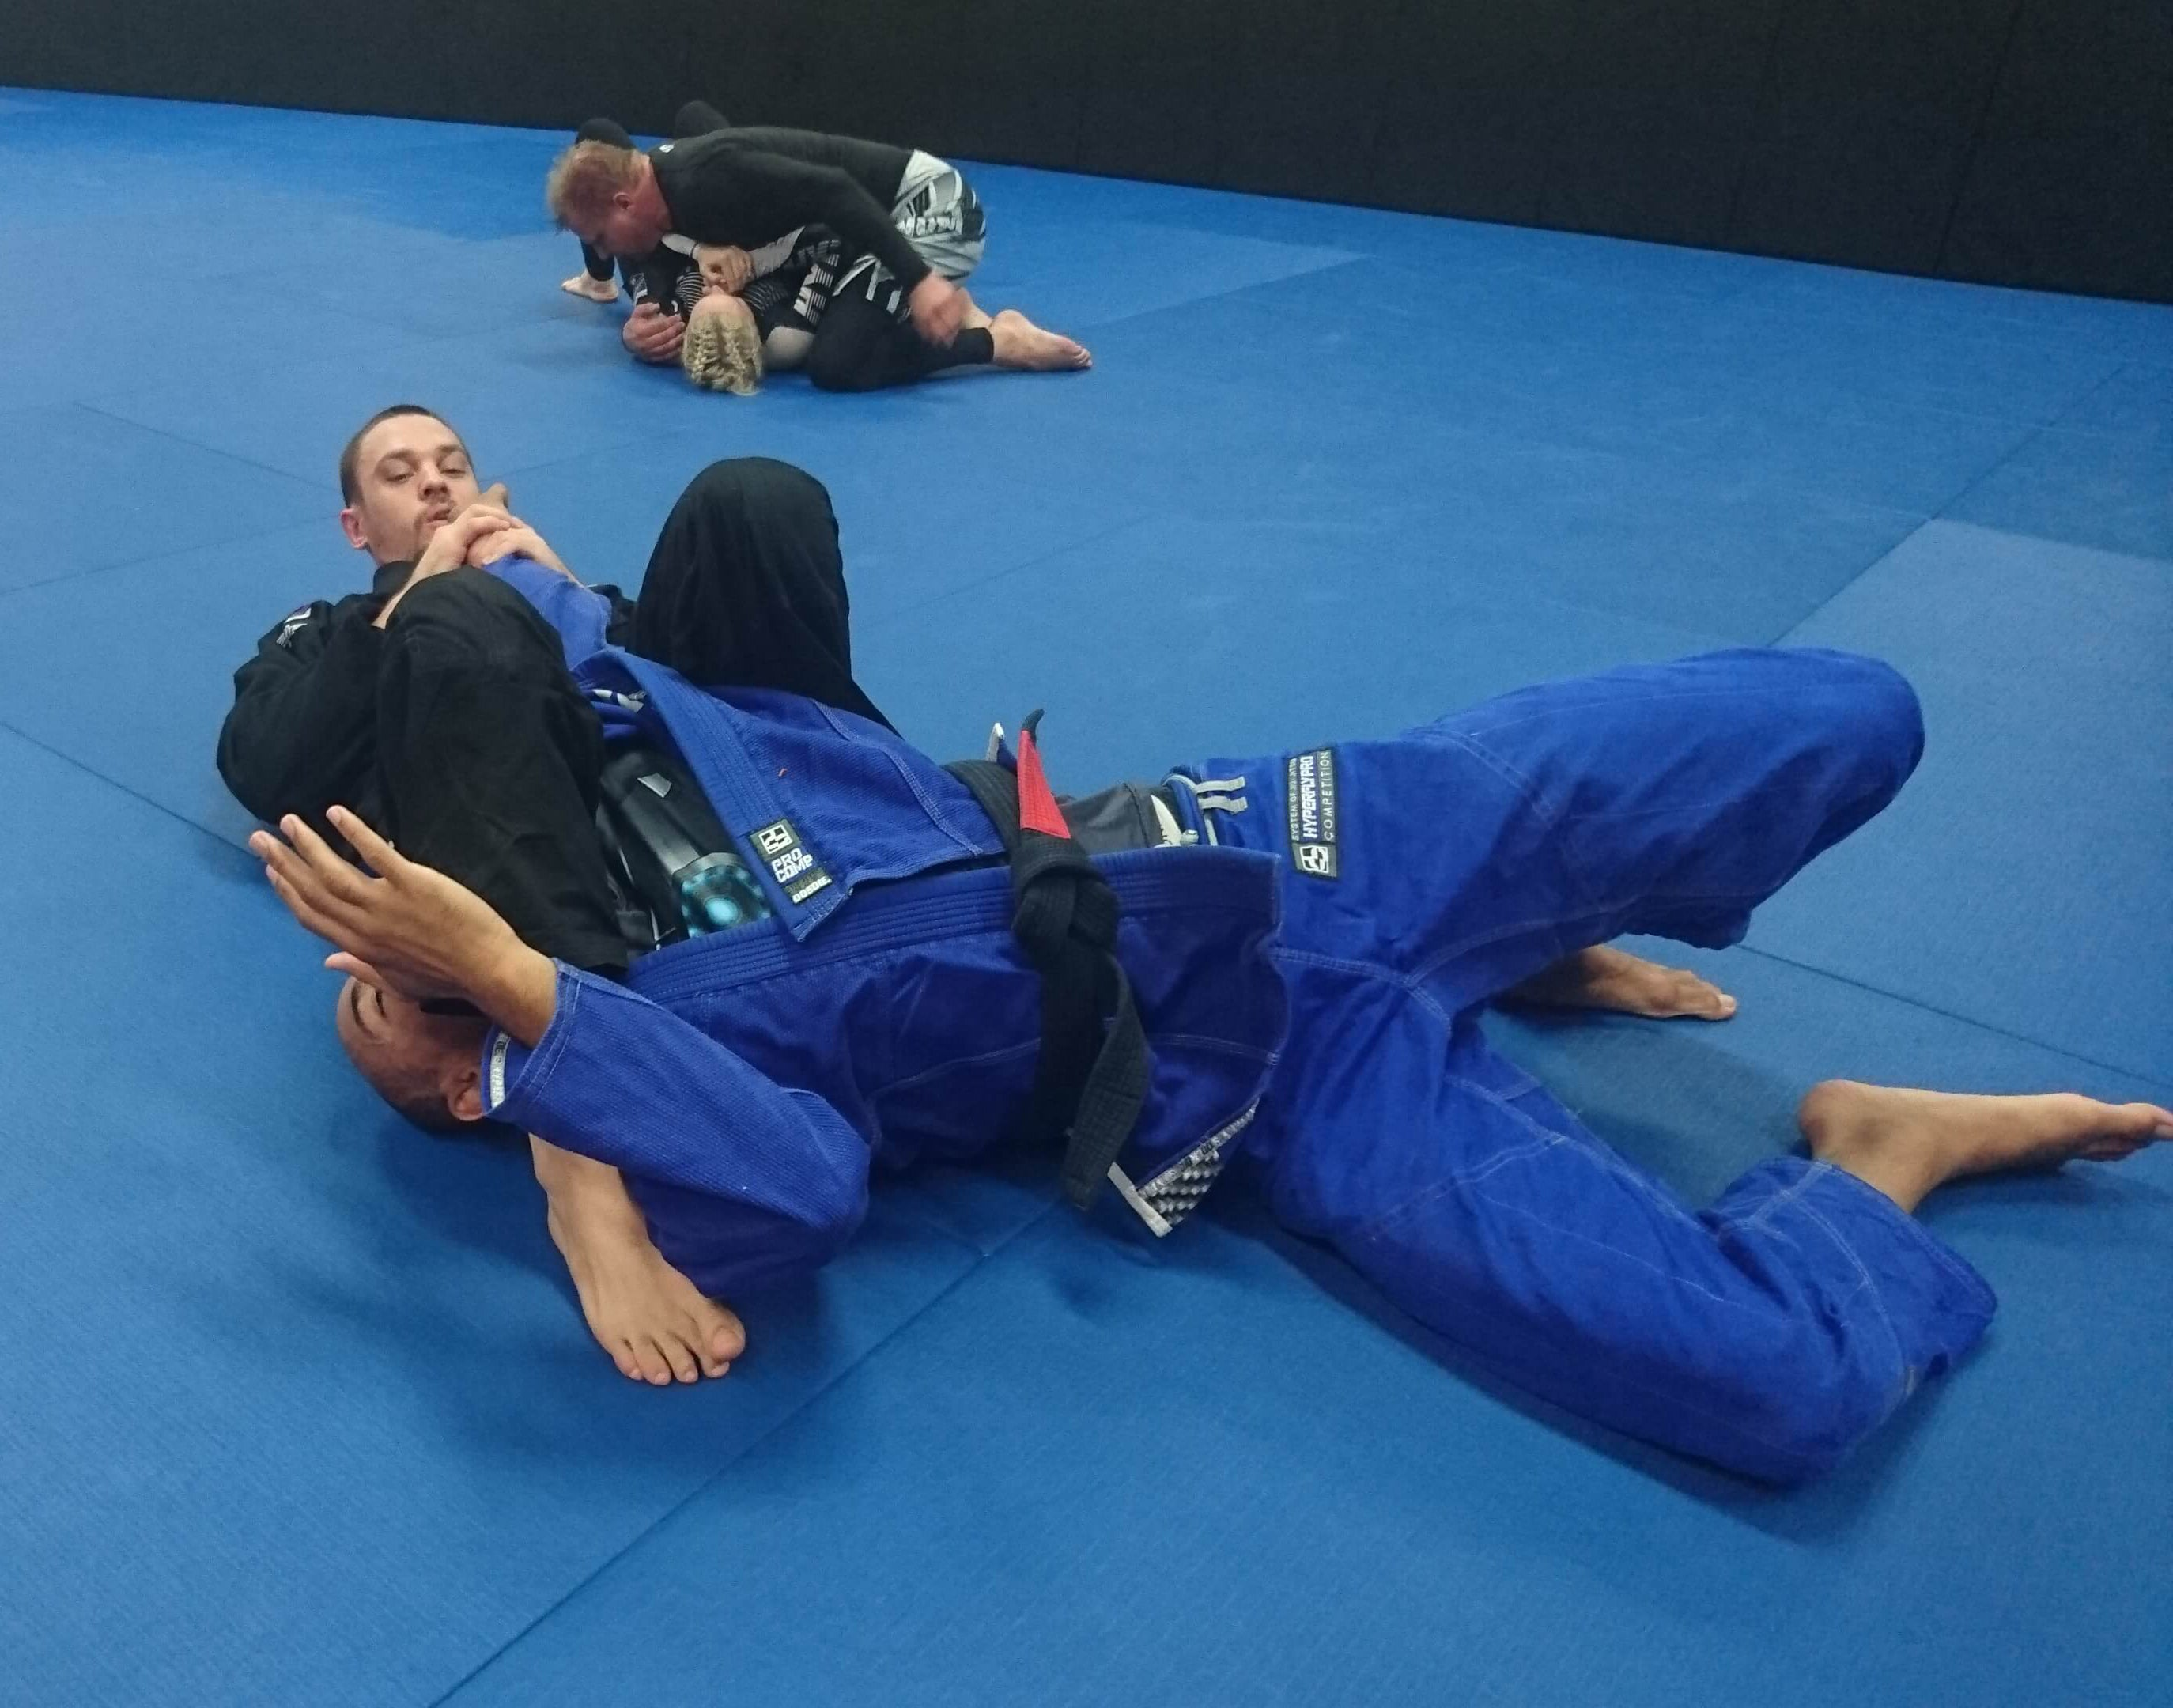 Elite sports Team Elite BJJ Shaun Steven Harrison image12.jpg